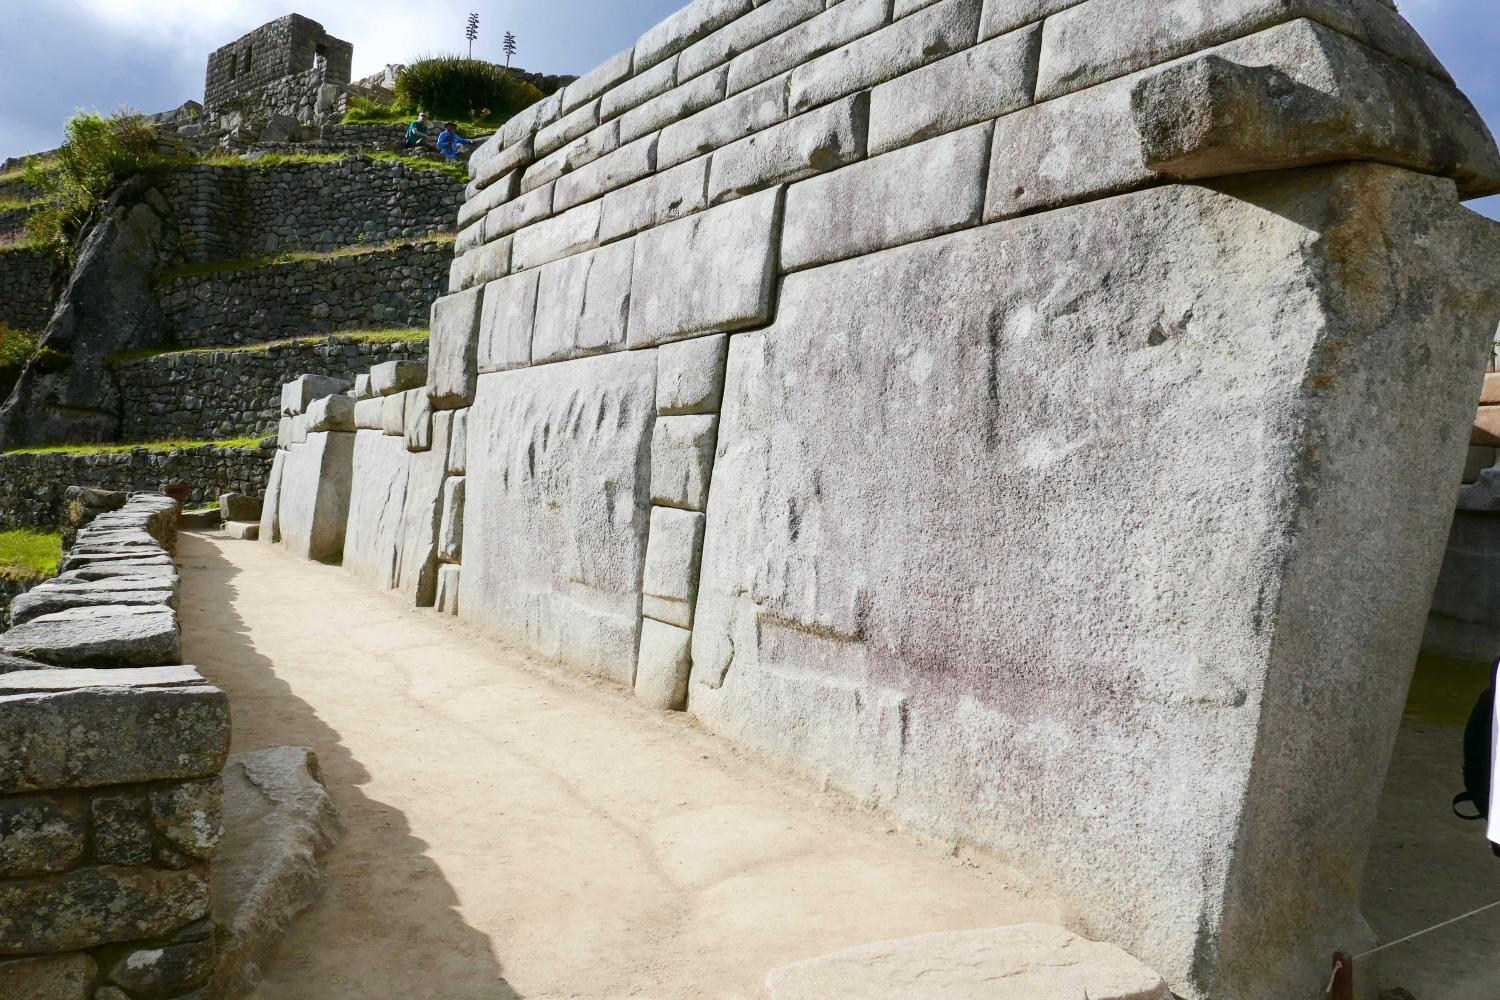 "MACHU PICCHU--LOOK AT THE 'CYCLOPEAN WALLS'.  THE ANGLES, THE FIT AND THE SIZE AS OPPOSED TO THE INCAN BUILDING MATERIALS AND SIZE - GIANT'S AND THEIR INHERITED  ""FALLEN ANGEL TECHNOLOGY"" KNOWLEDGE PUT THESE IN PLACE"